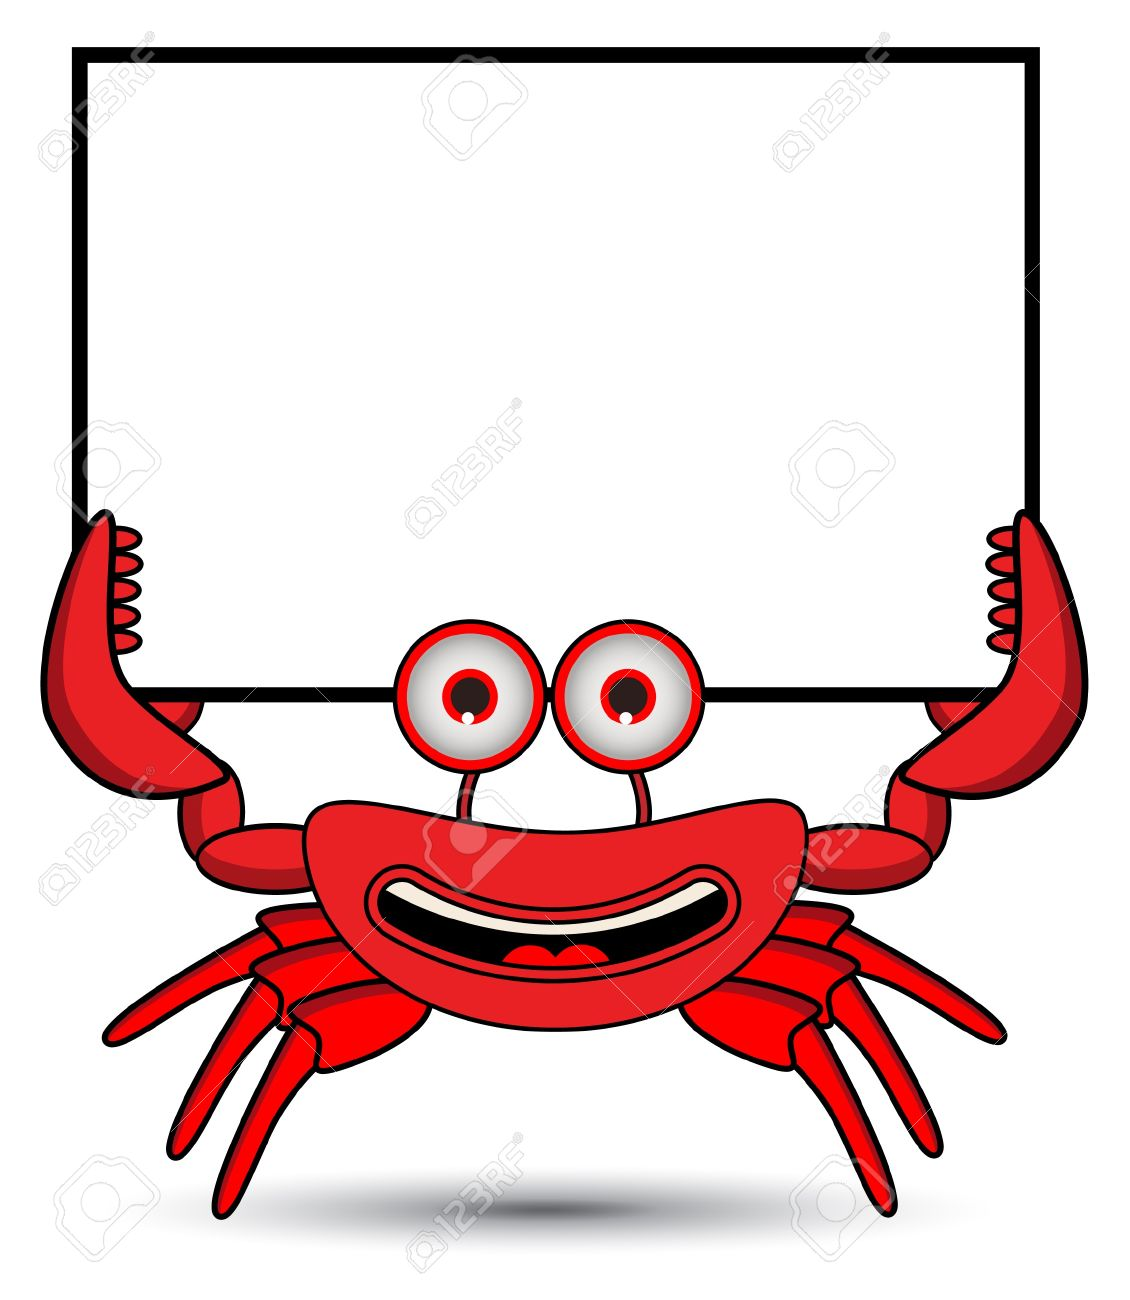 Crab Banner Stock Vector - 13690982